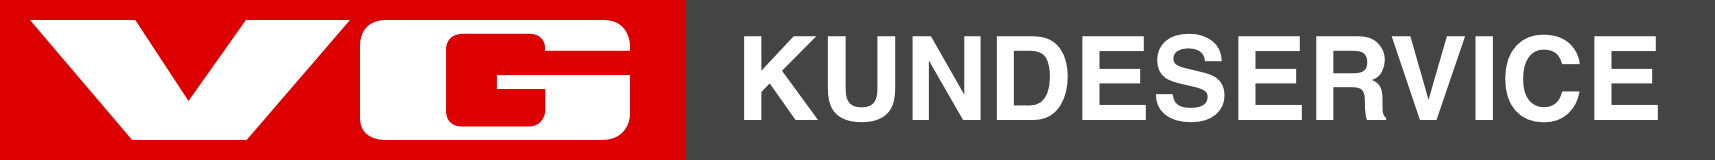 Kundeservice_logo.png